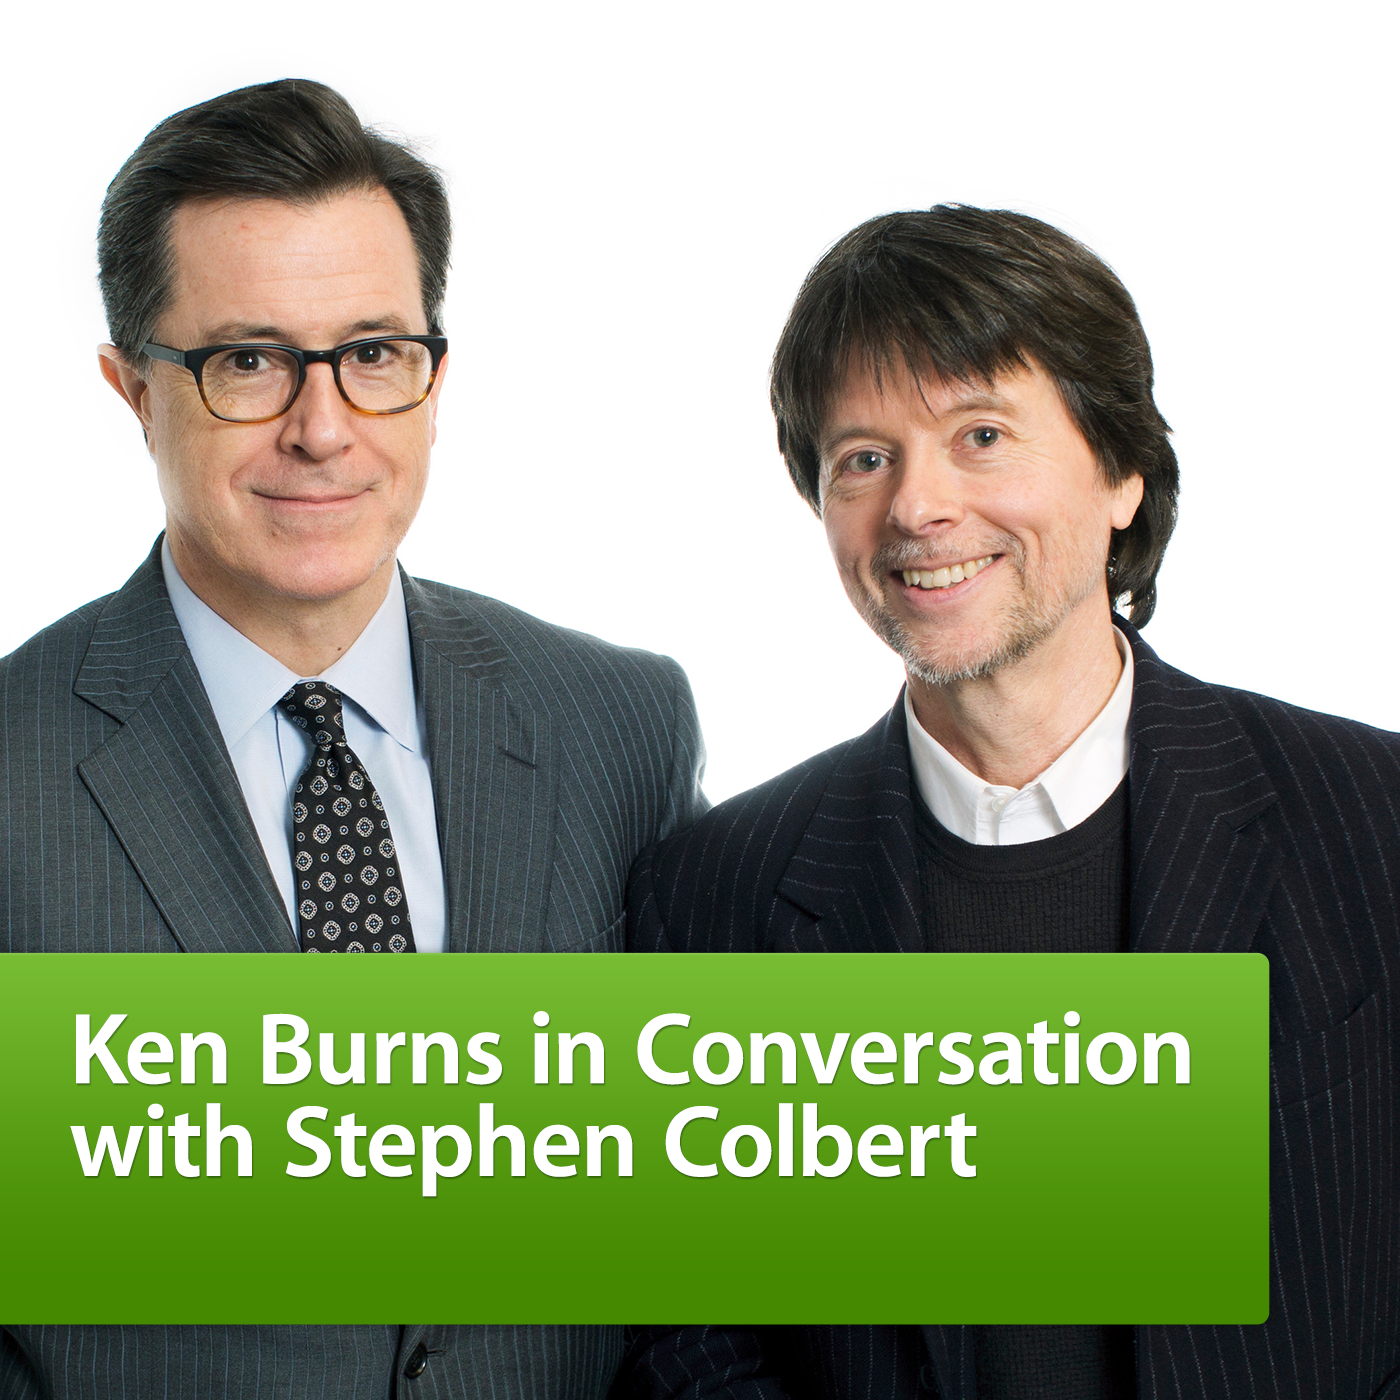 Ken Burns in Conversation with Stephen Colbert